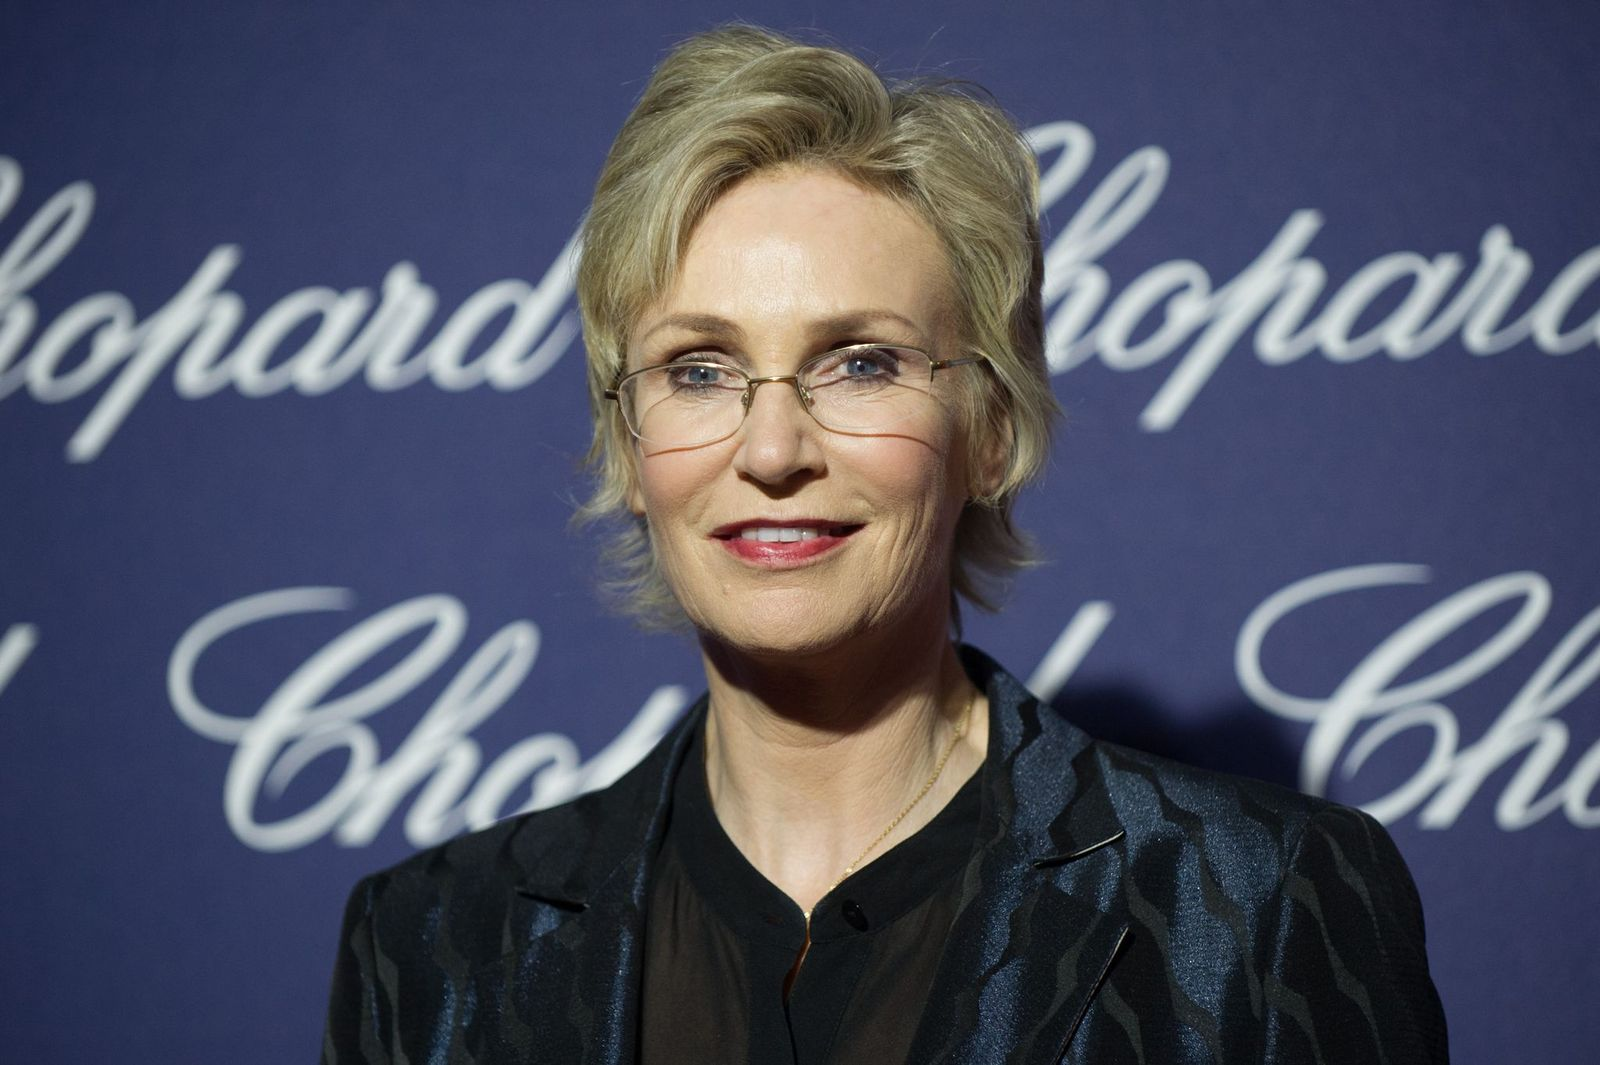 Glee' Actress Jane Lynch Speaks to Late Co-star Naya Rivera in a Touching  Post on Twitter